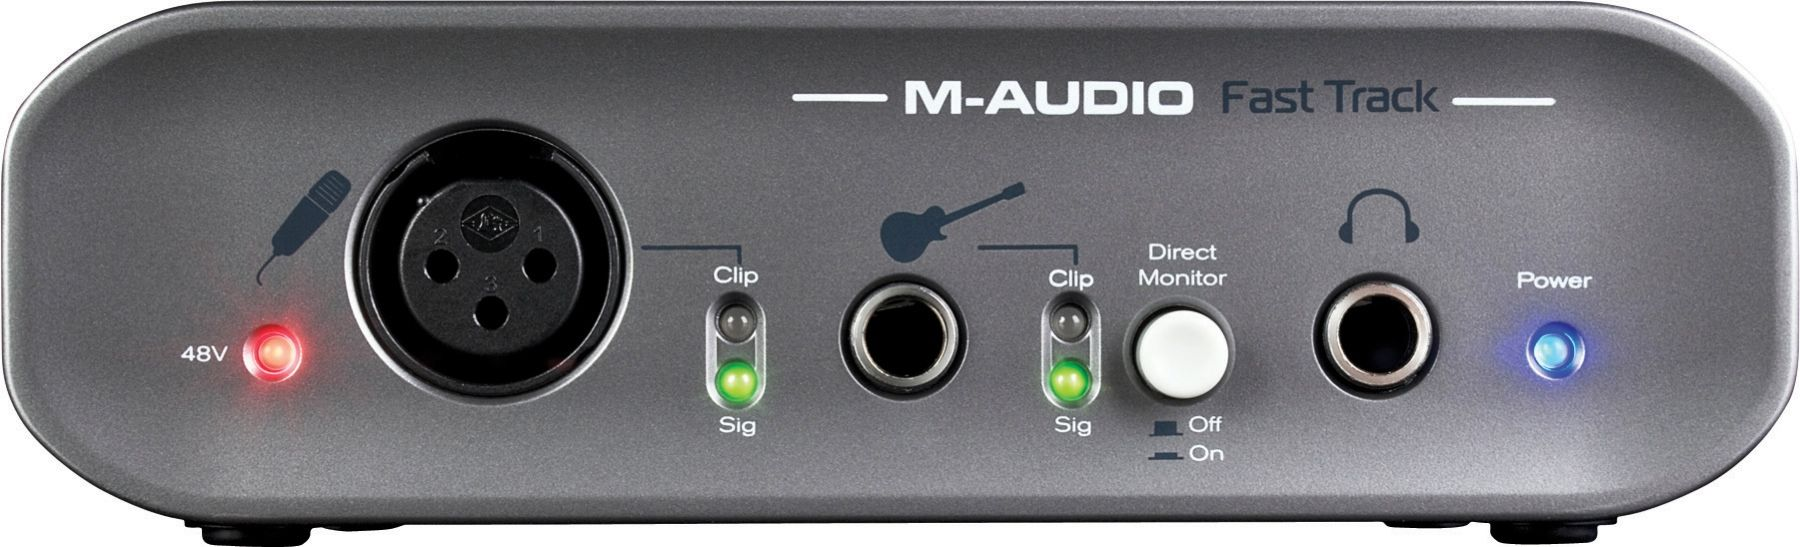 MAudio AIR 192X4 USB Audio Interface M audio, Audio, Usb